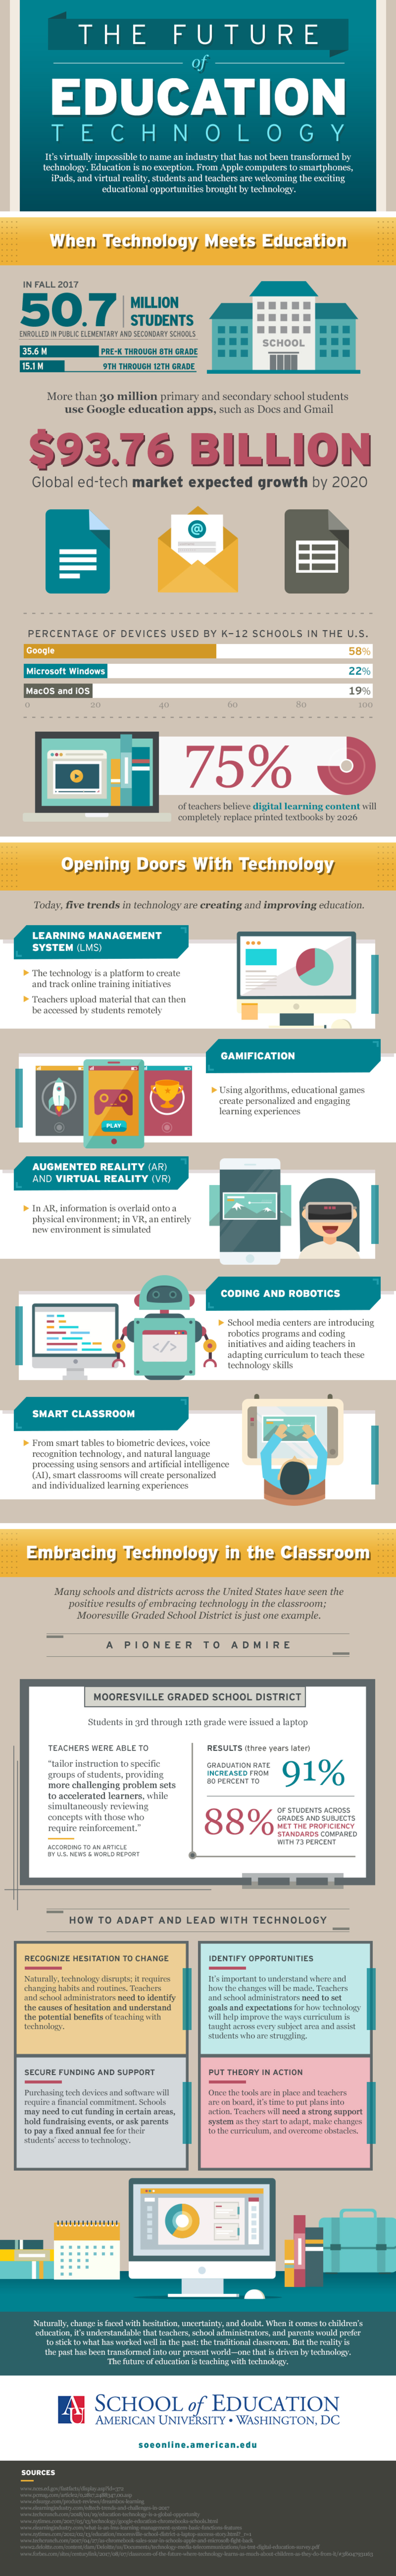 Technology In Schools [Infographic]